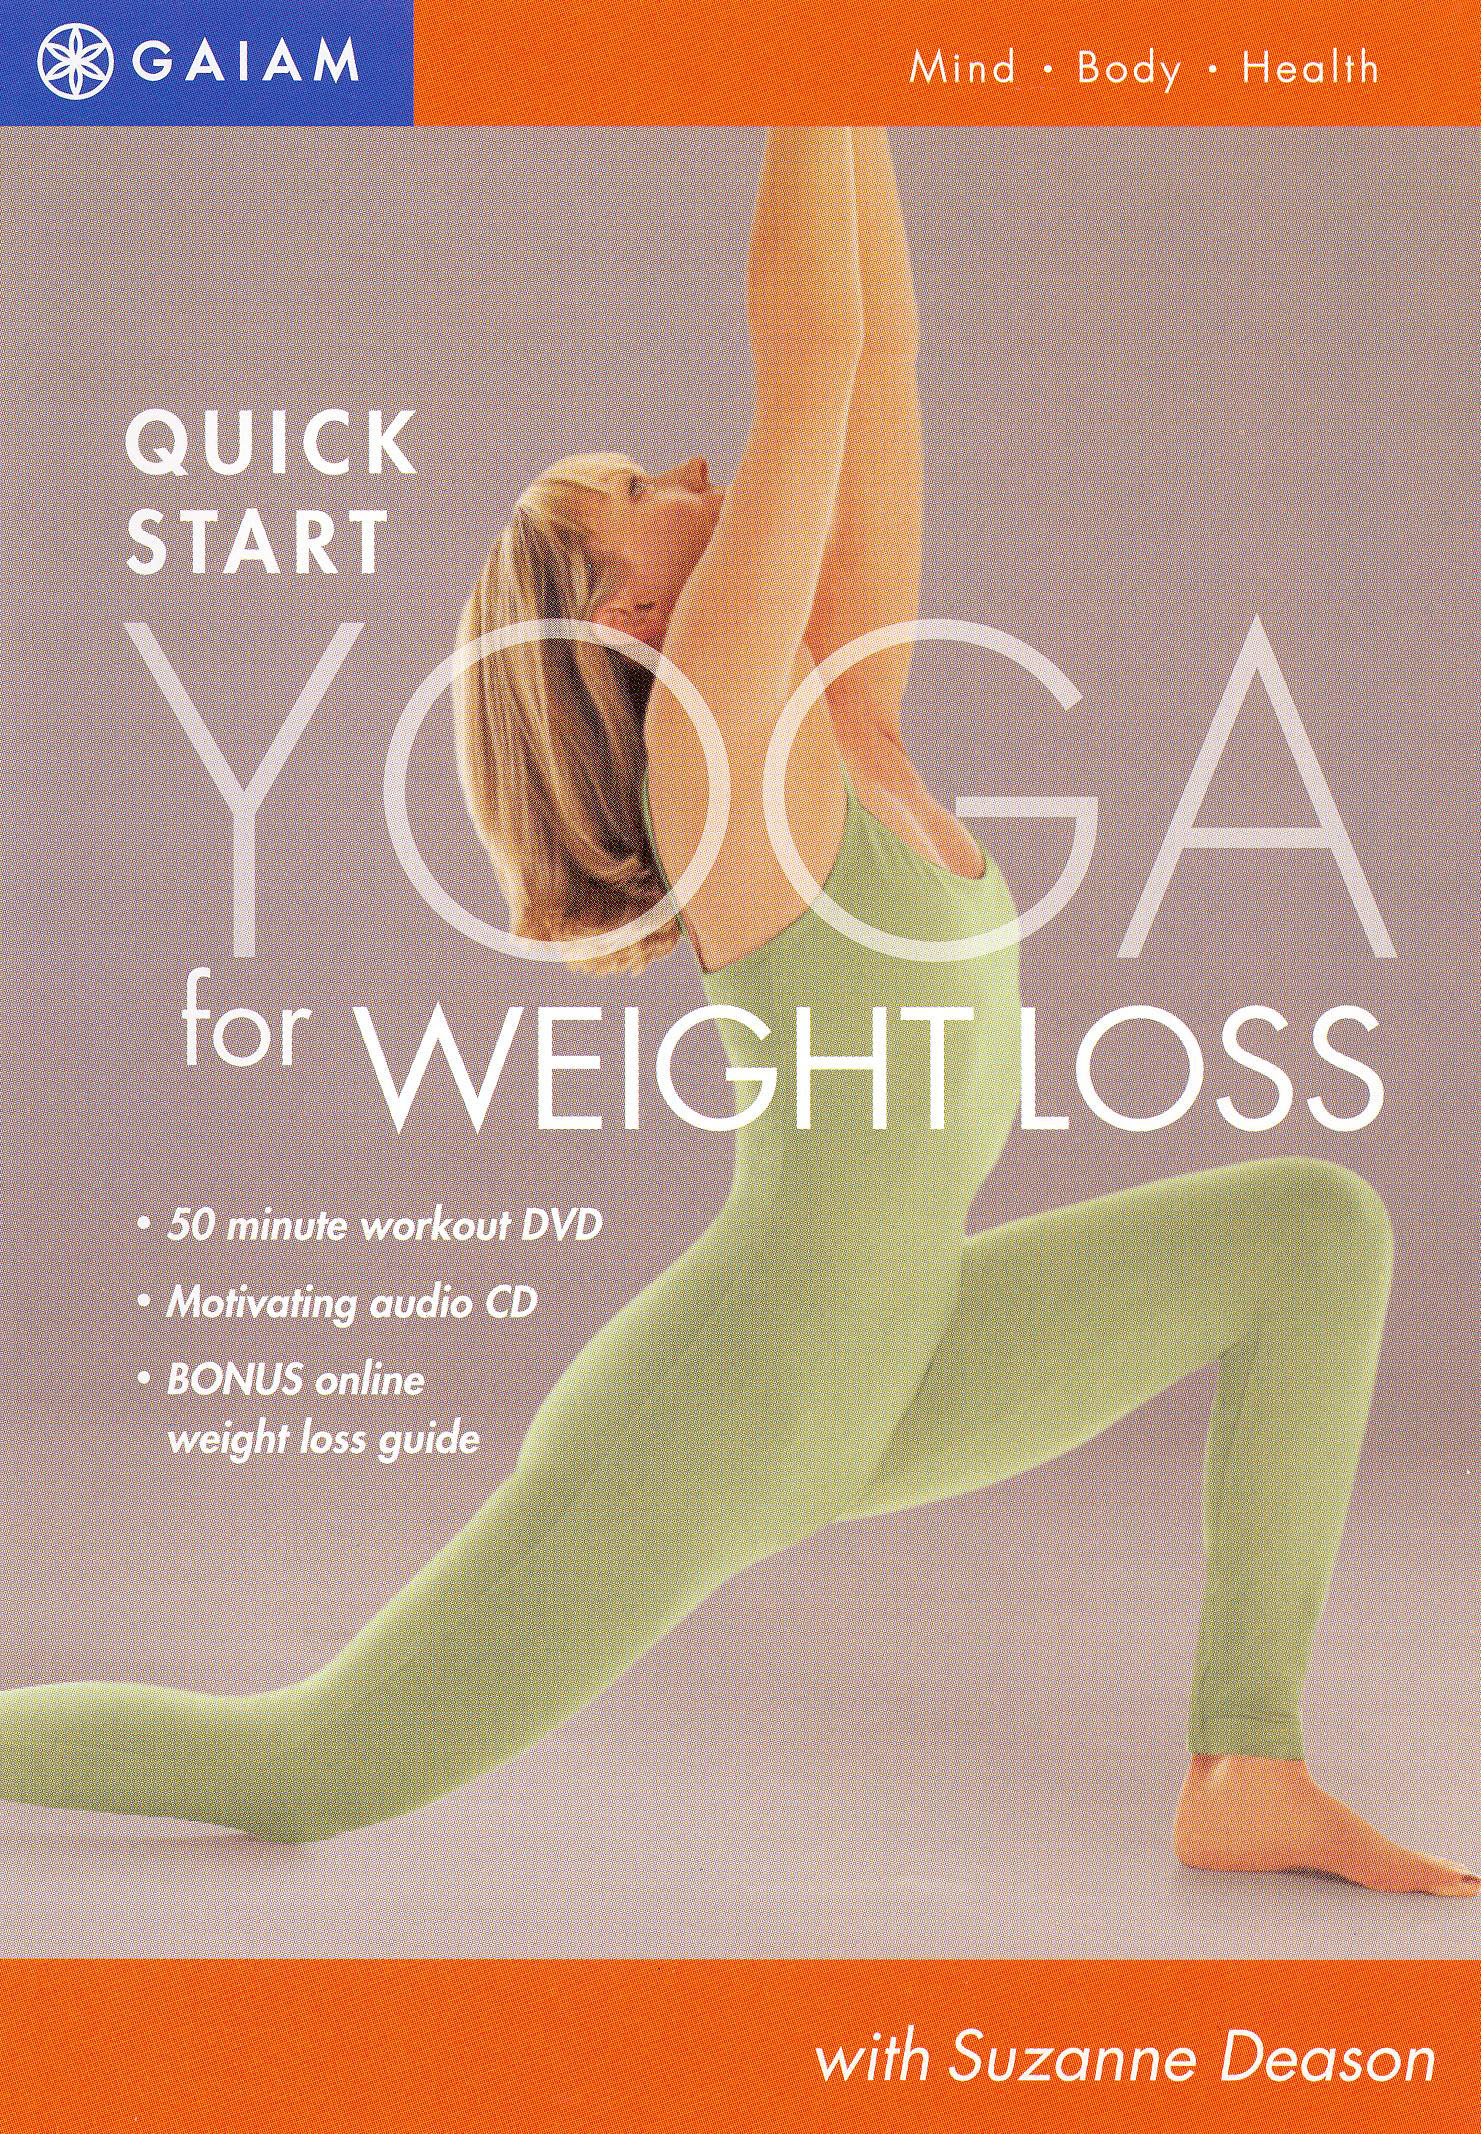 30 Minute Quick Start Yoga for Weight Loss